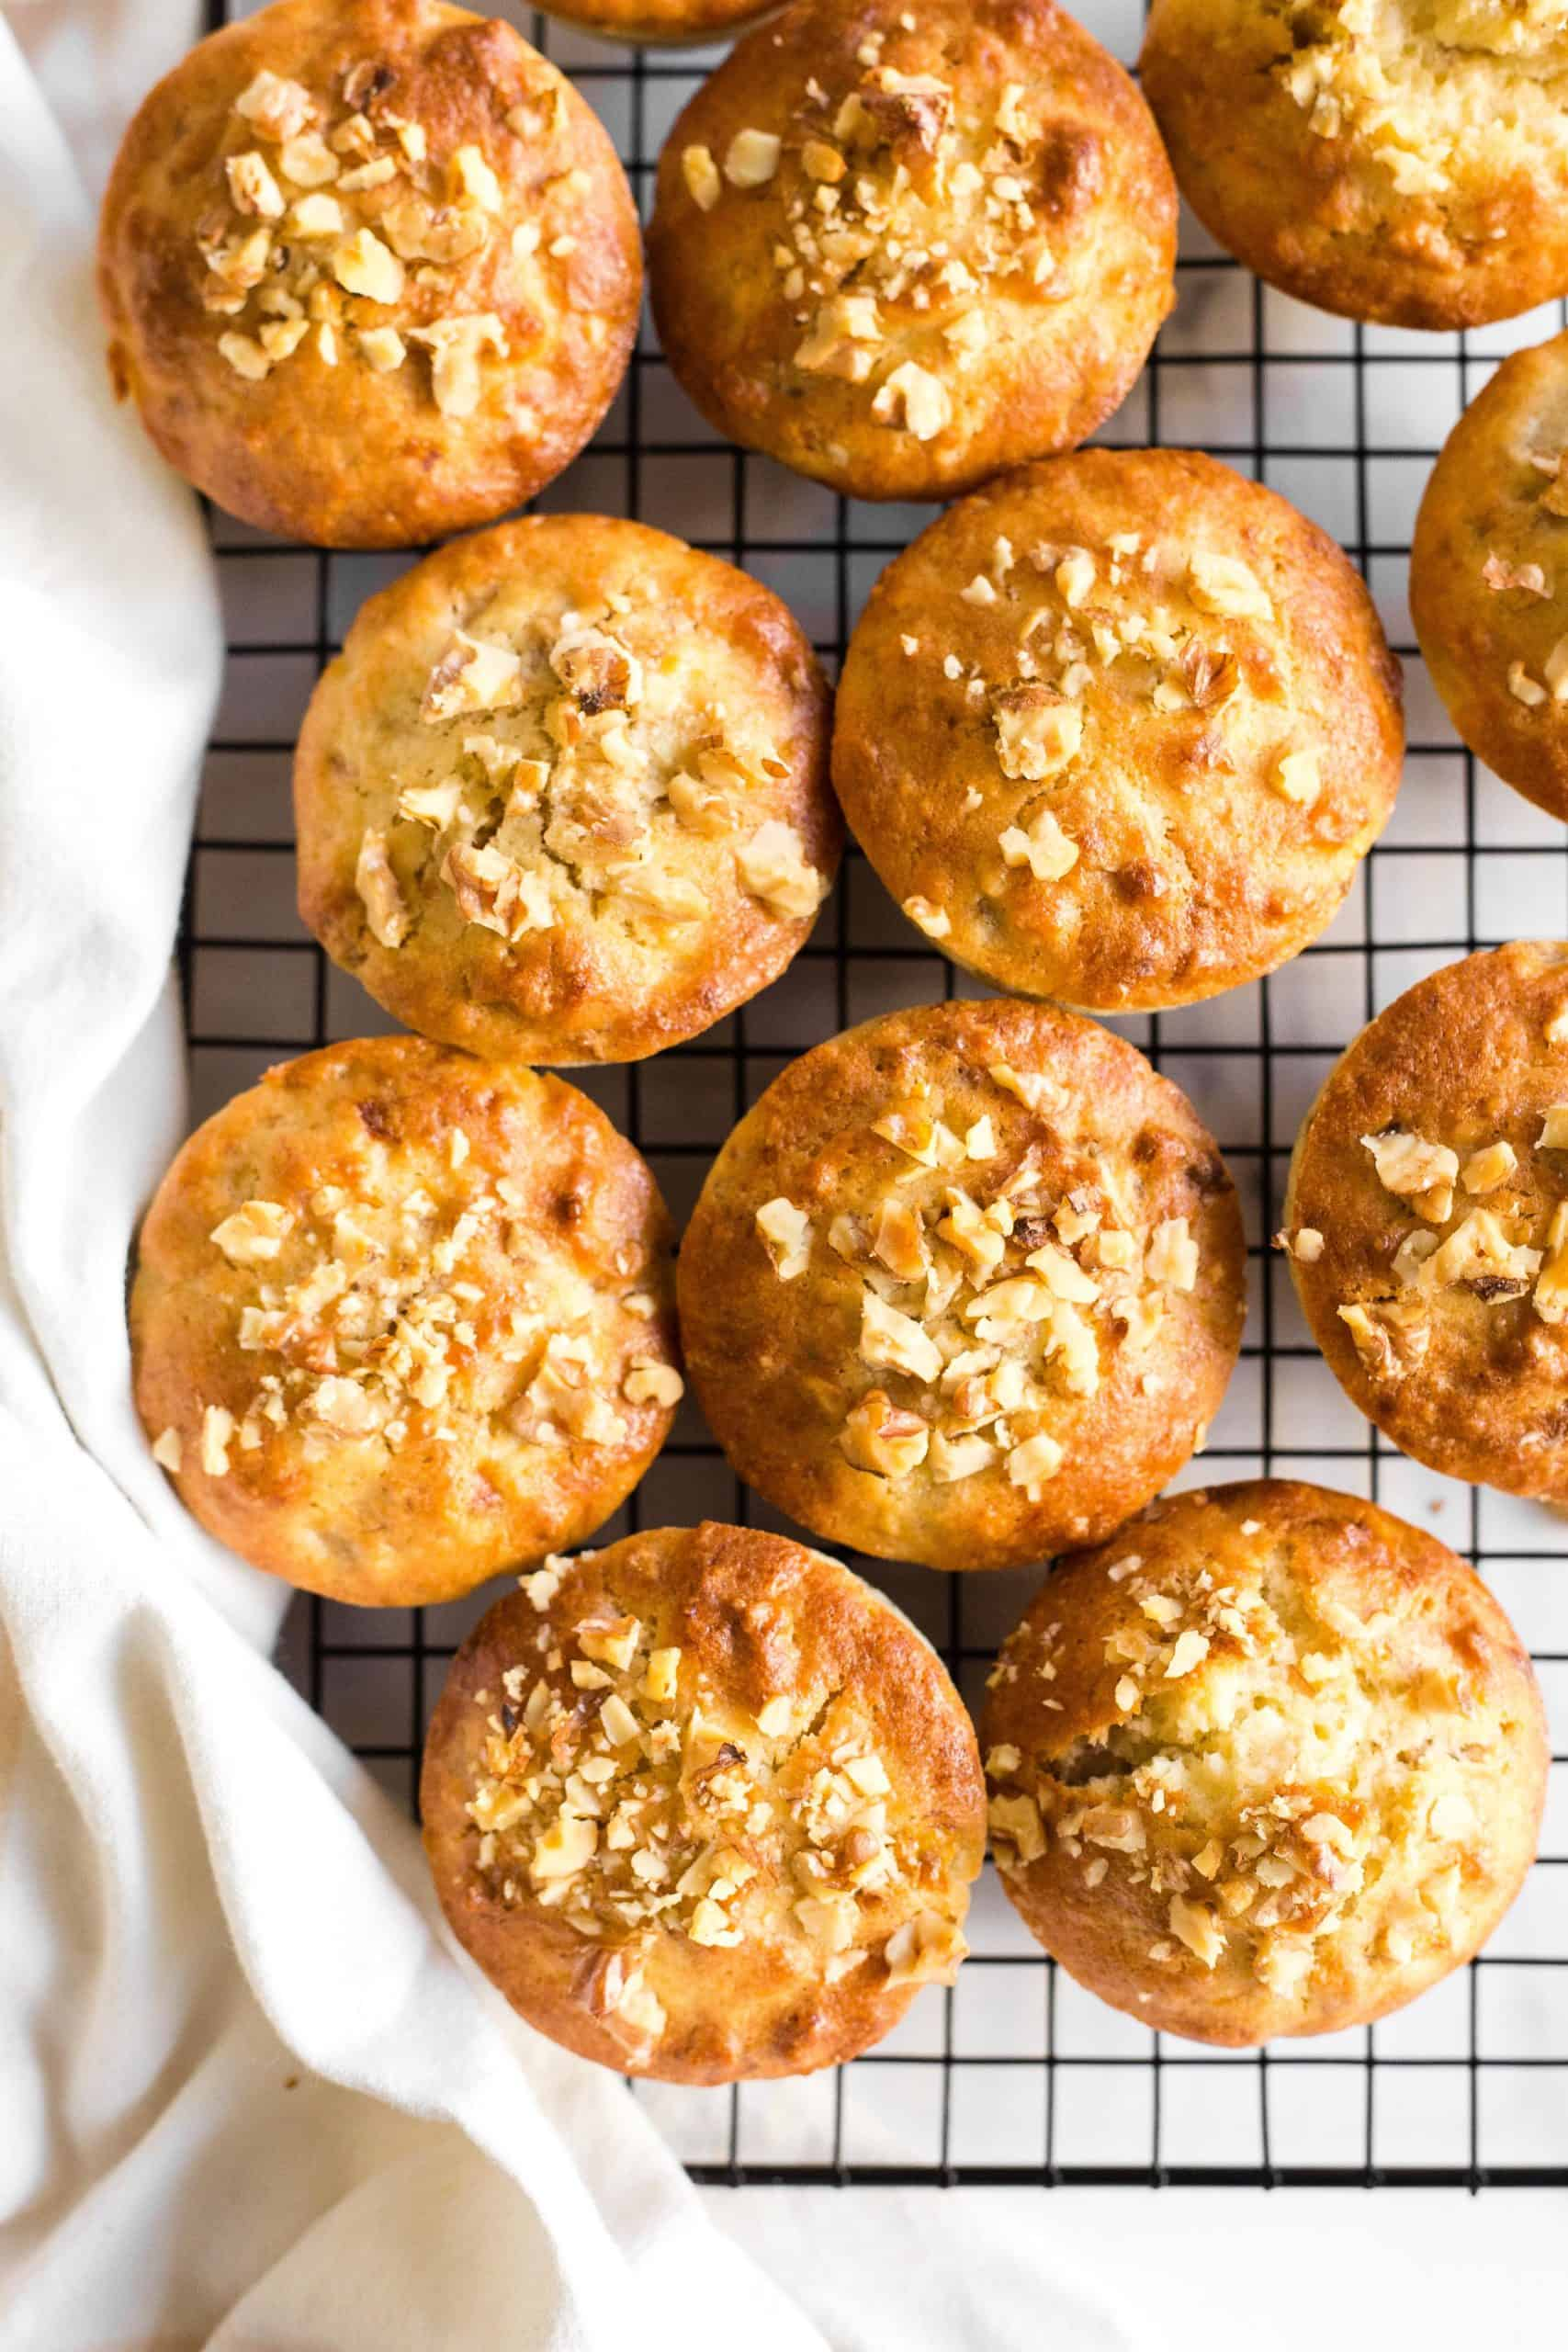 Banana nut muffins cooling on a wire rack.